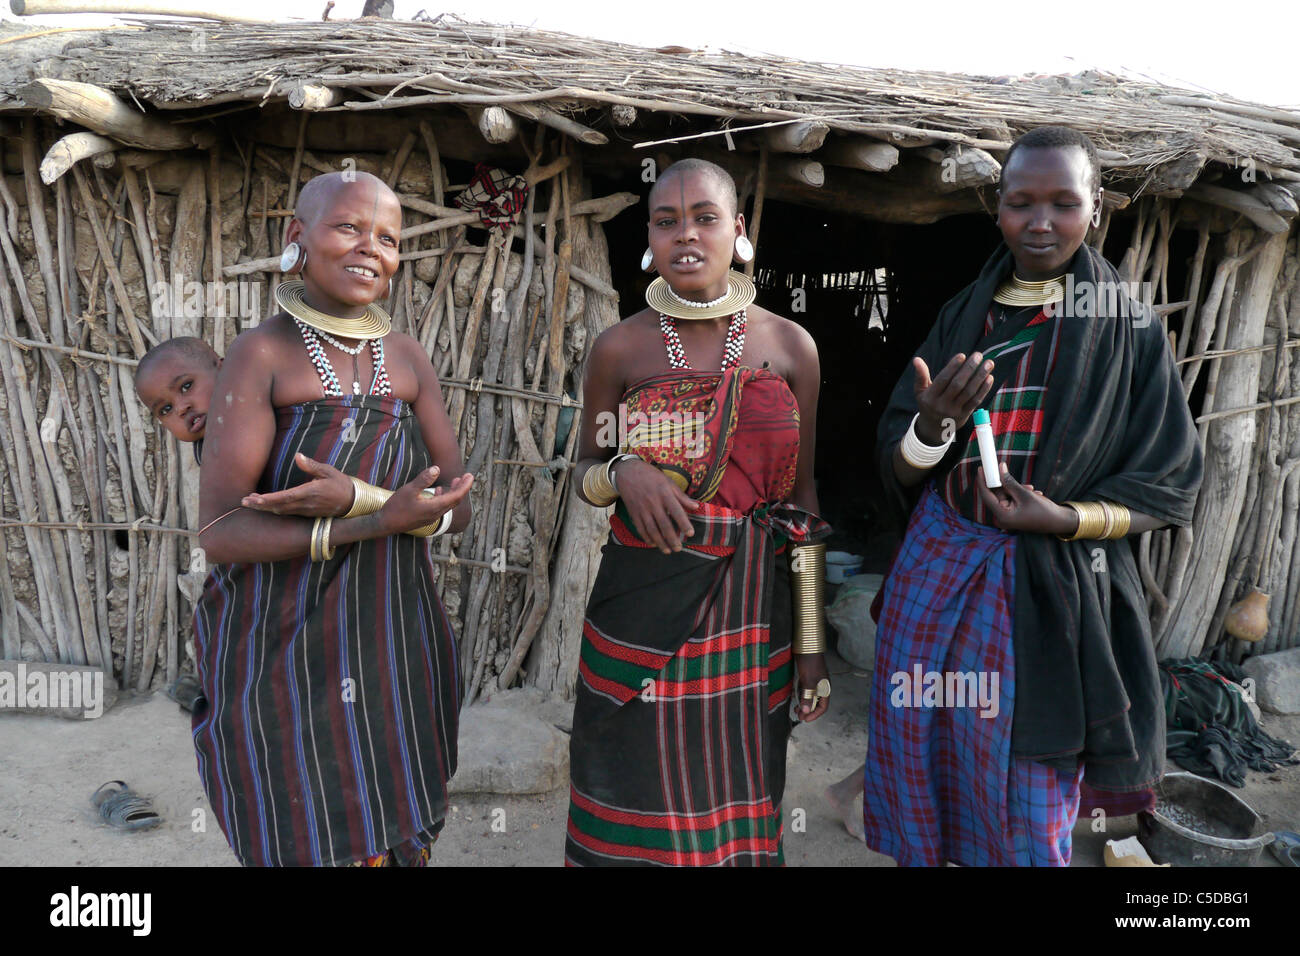 TANZANIA Watatulu tribeswomen of Miyuguyu, Shinyanga district. photograph by Sean Sprague Stock Photo